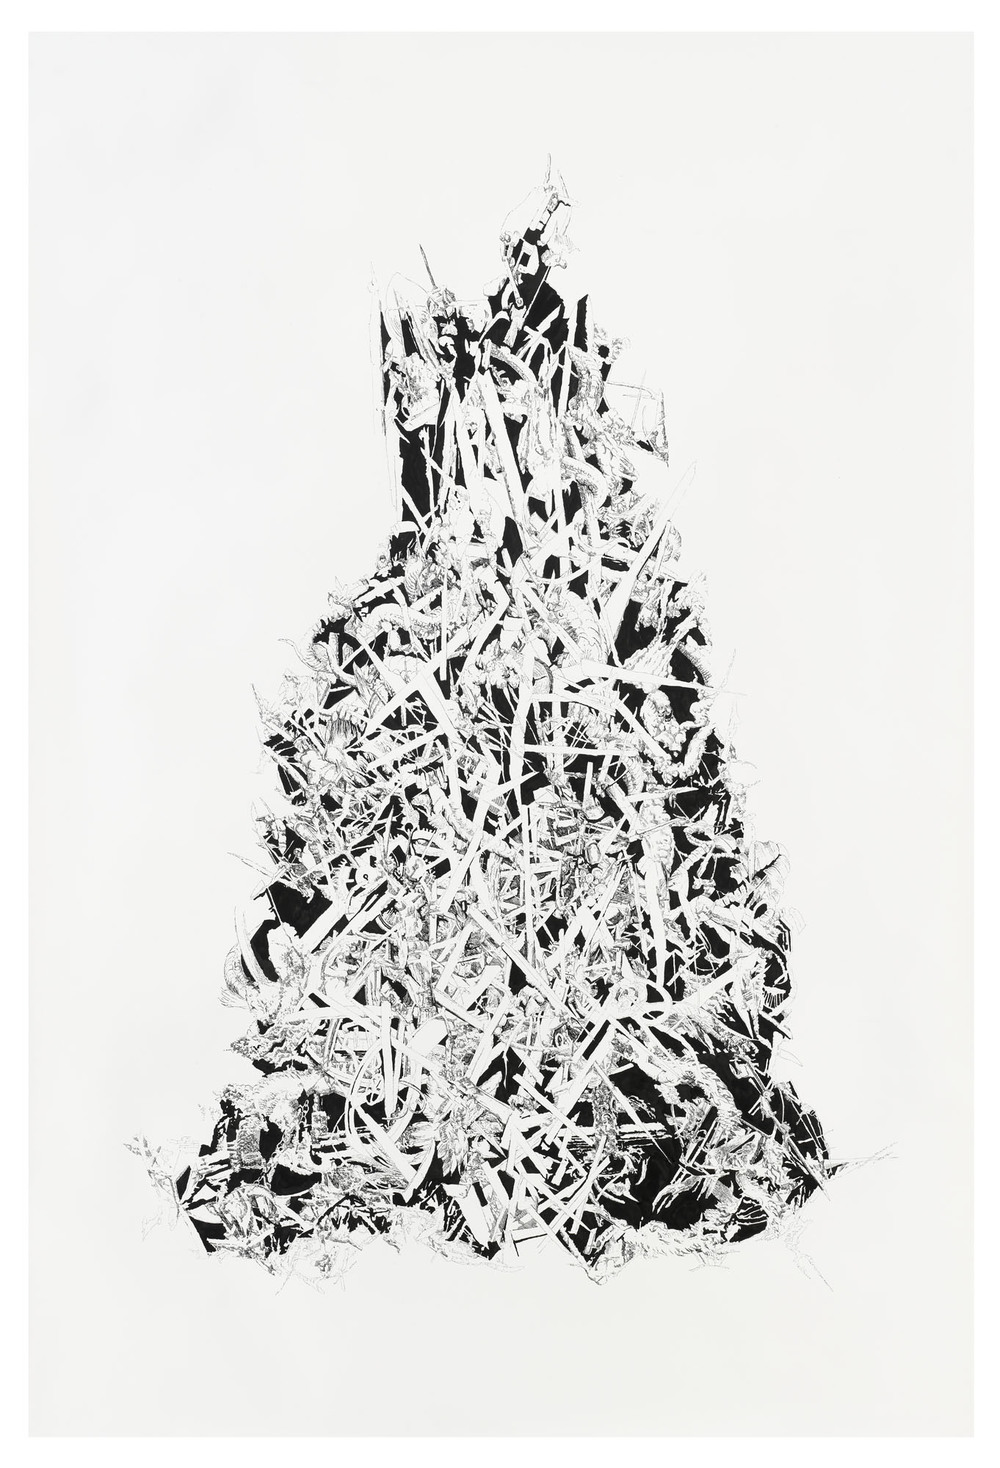 BK P69 | untitled | ink on paper | 250x170cm | 2010 | privat collection munich